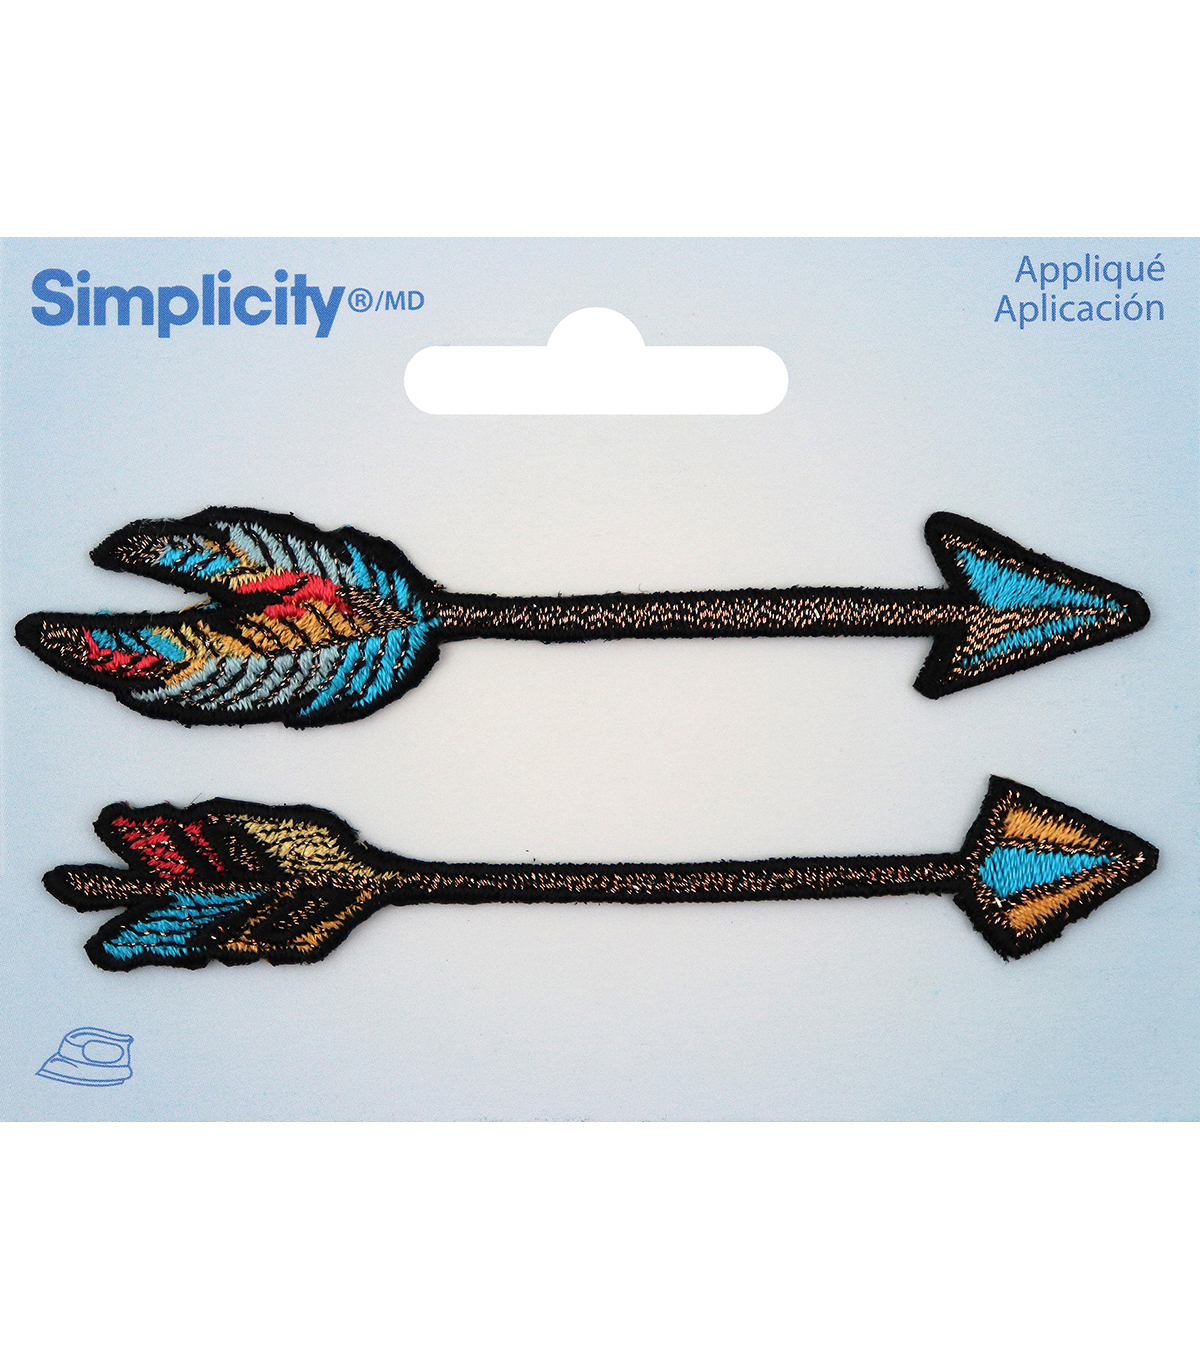 Simplicity 2 pk Arrow Iron-on Appliques-Multi